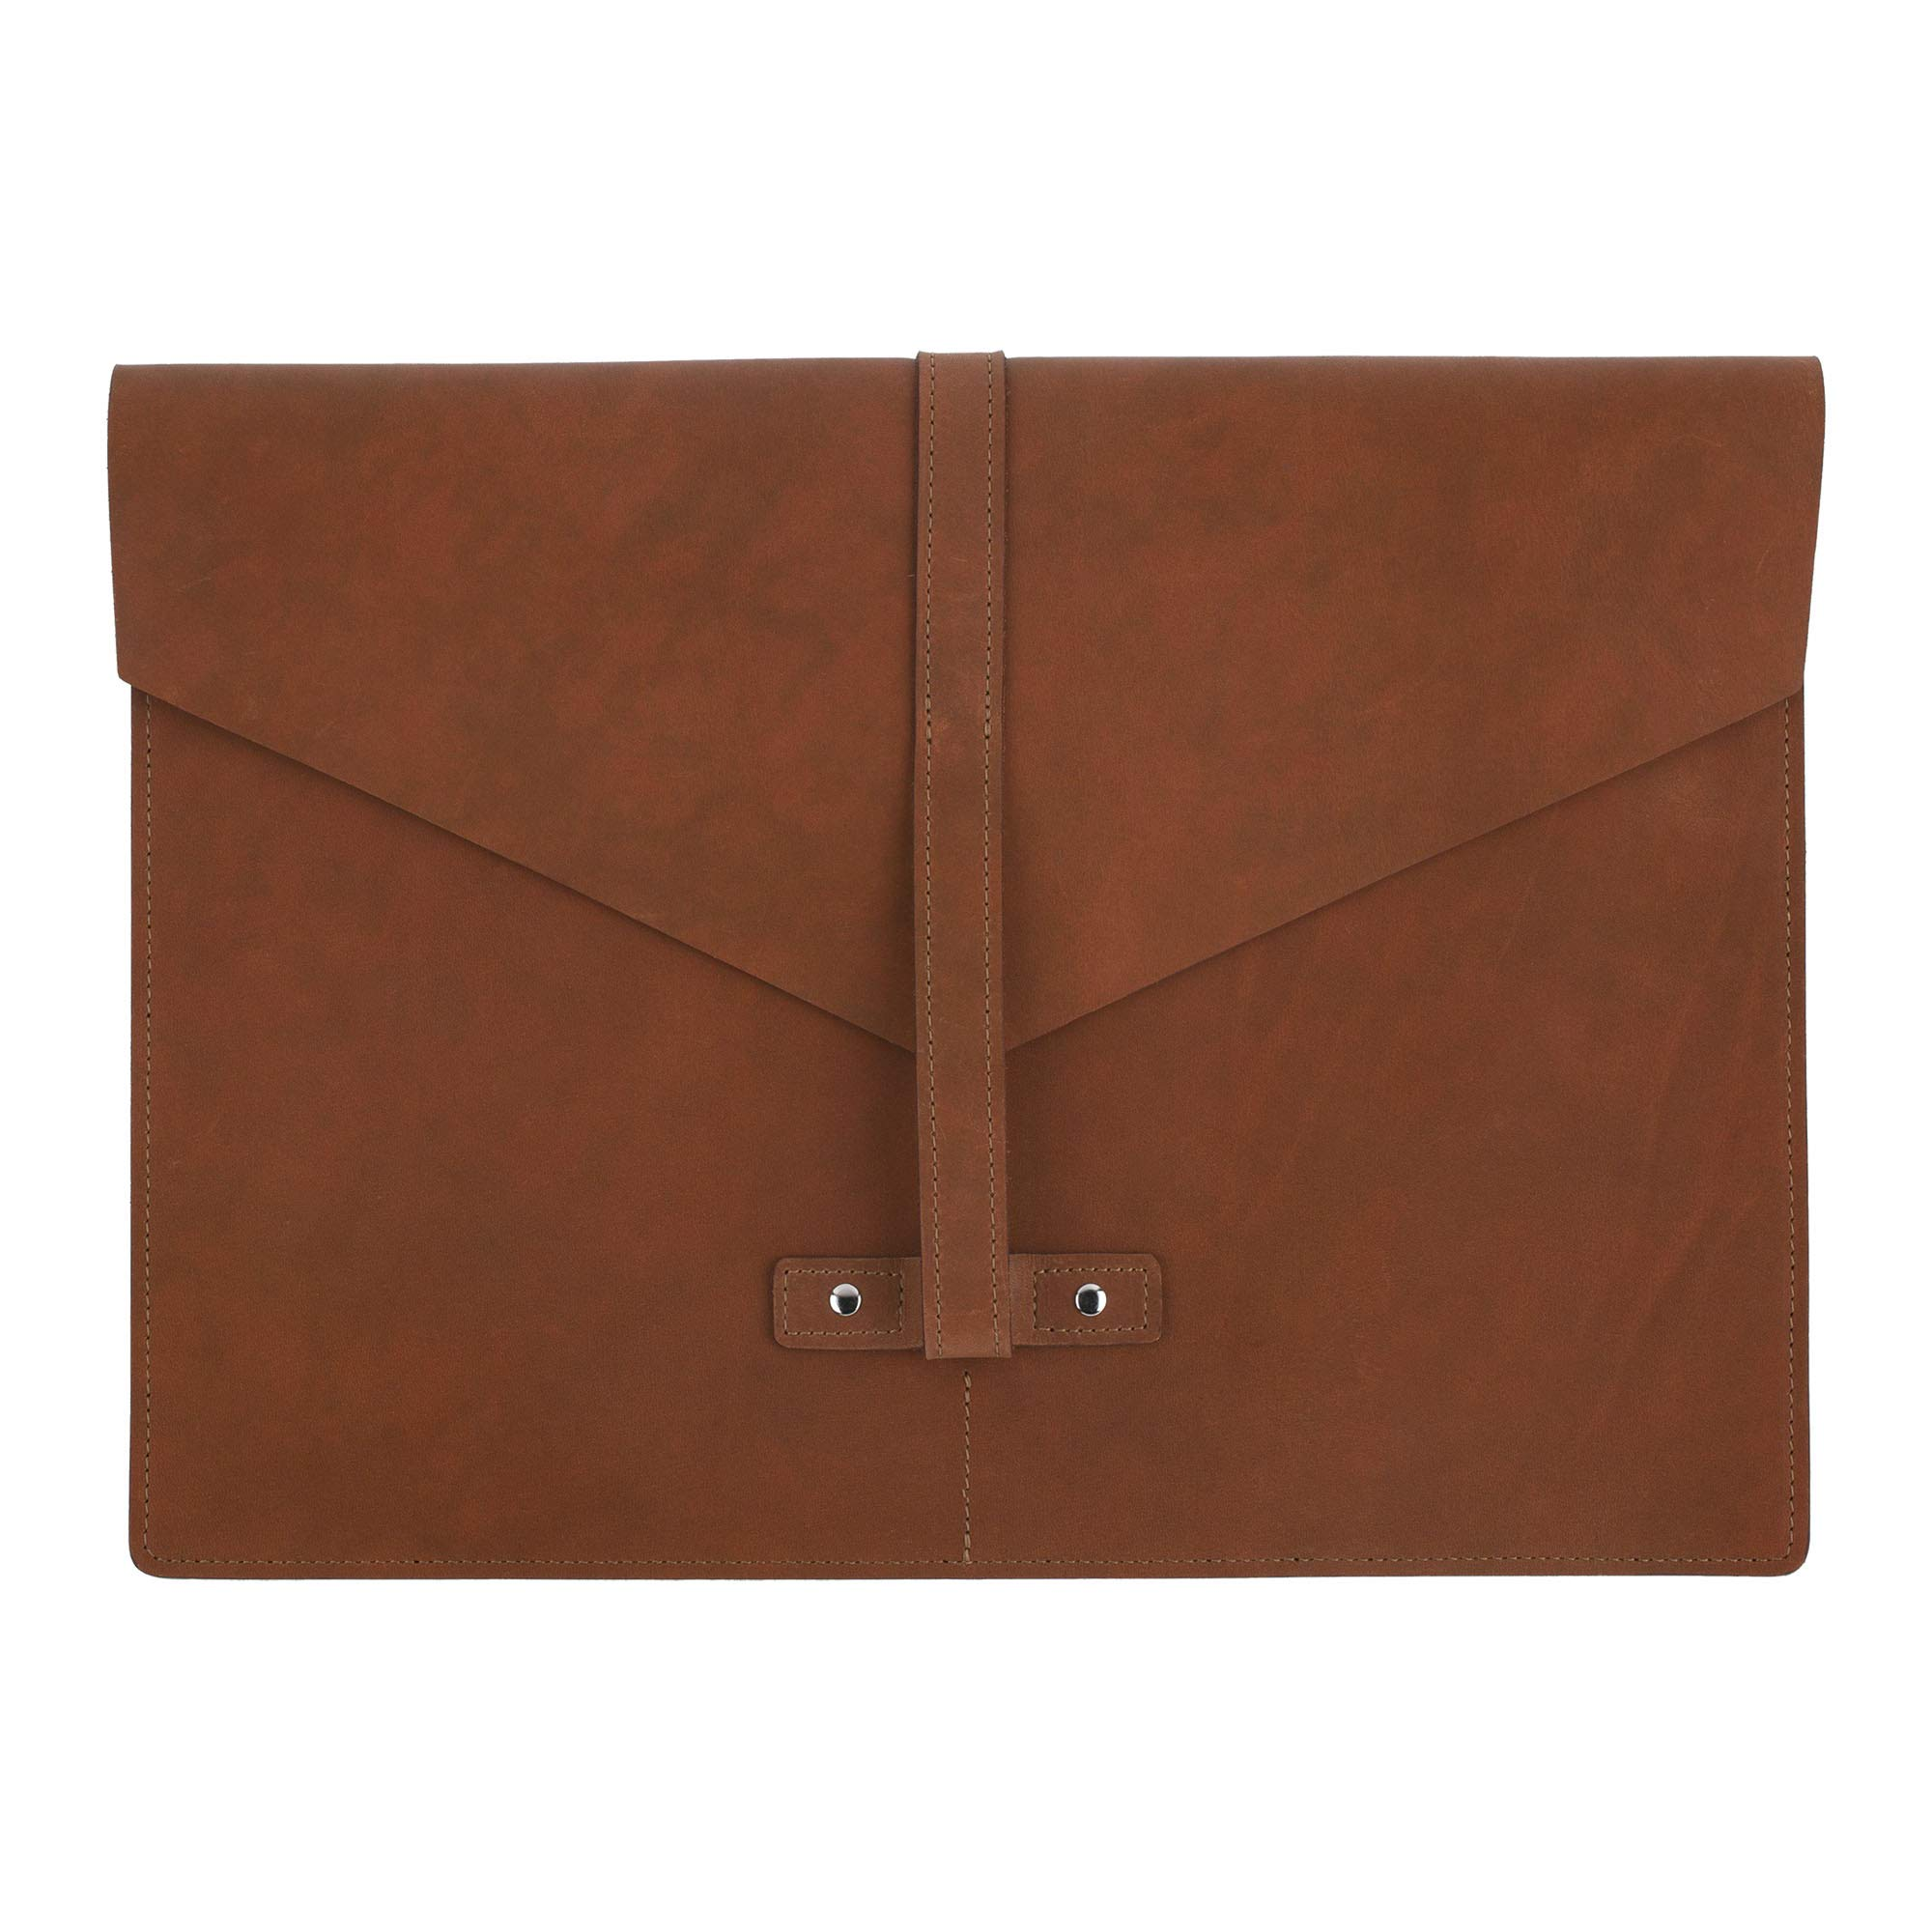 SLATE COLLECTION Belltown Small Laptop Sleeve, Full-Grain Leather (Cognac, fits 13'' Laptop) by SLATE COLLECTION (Image #3)